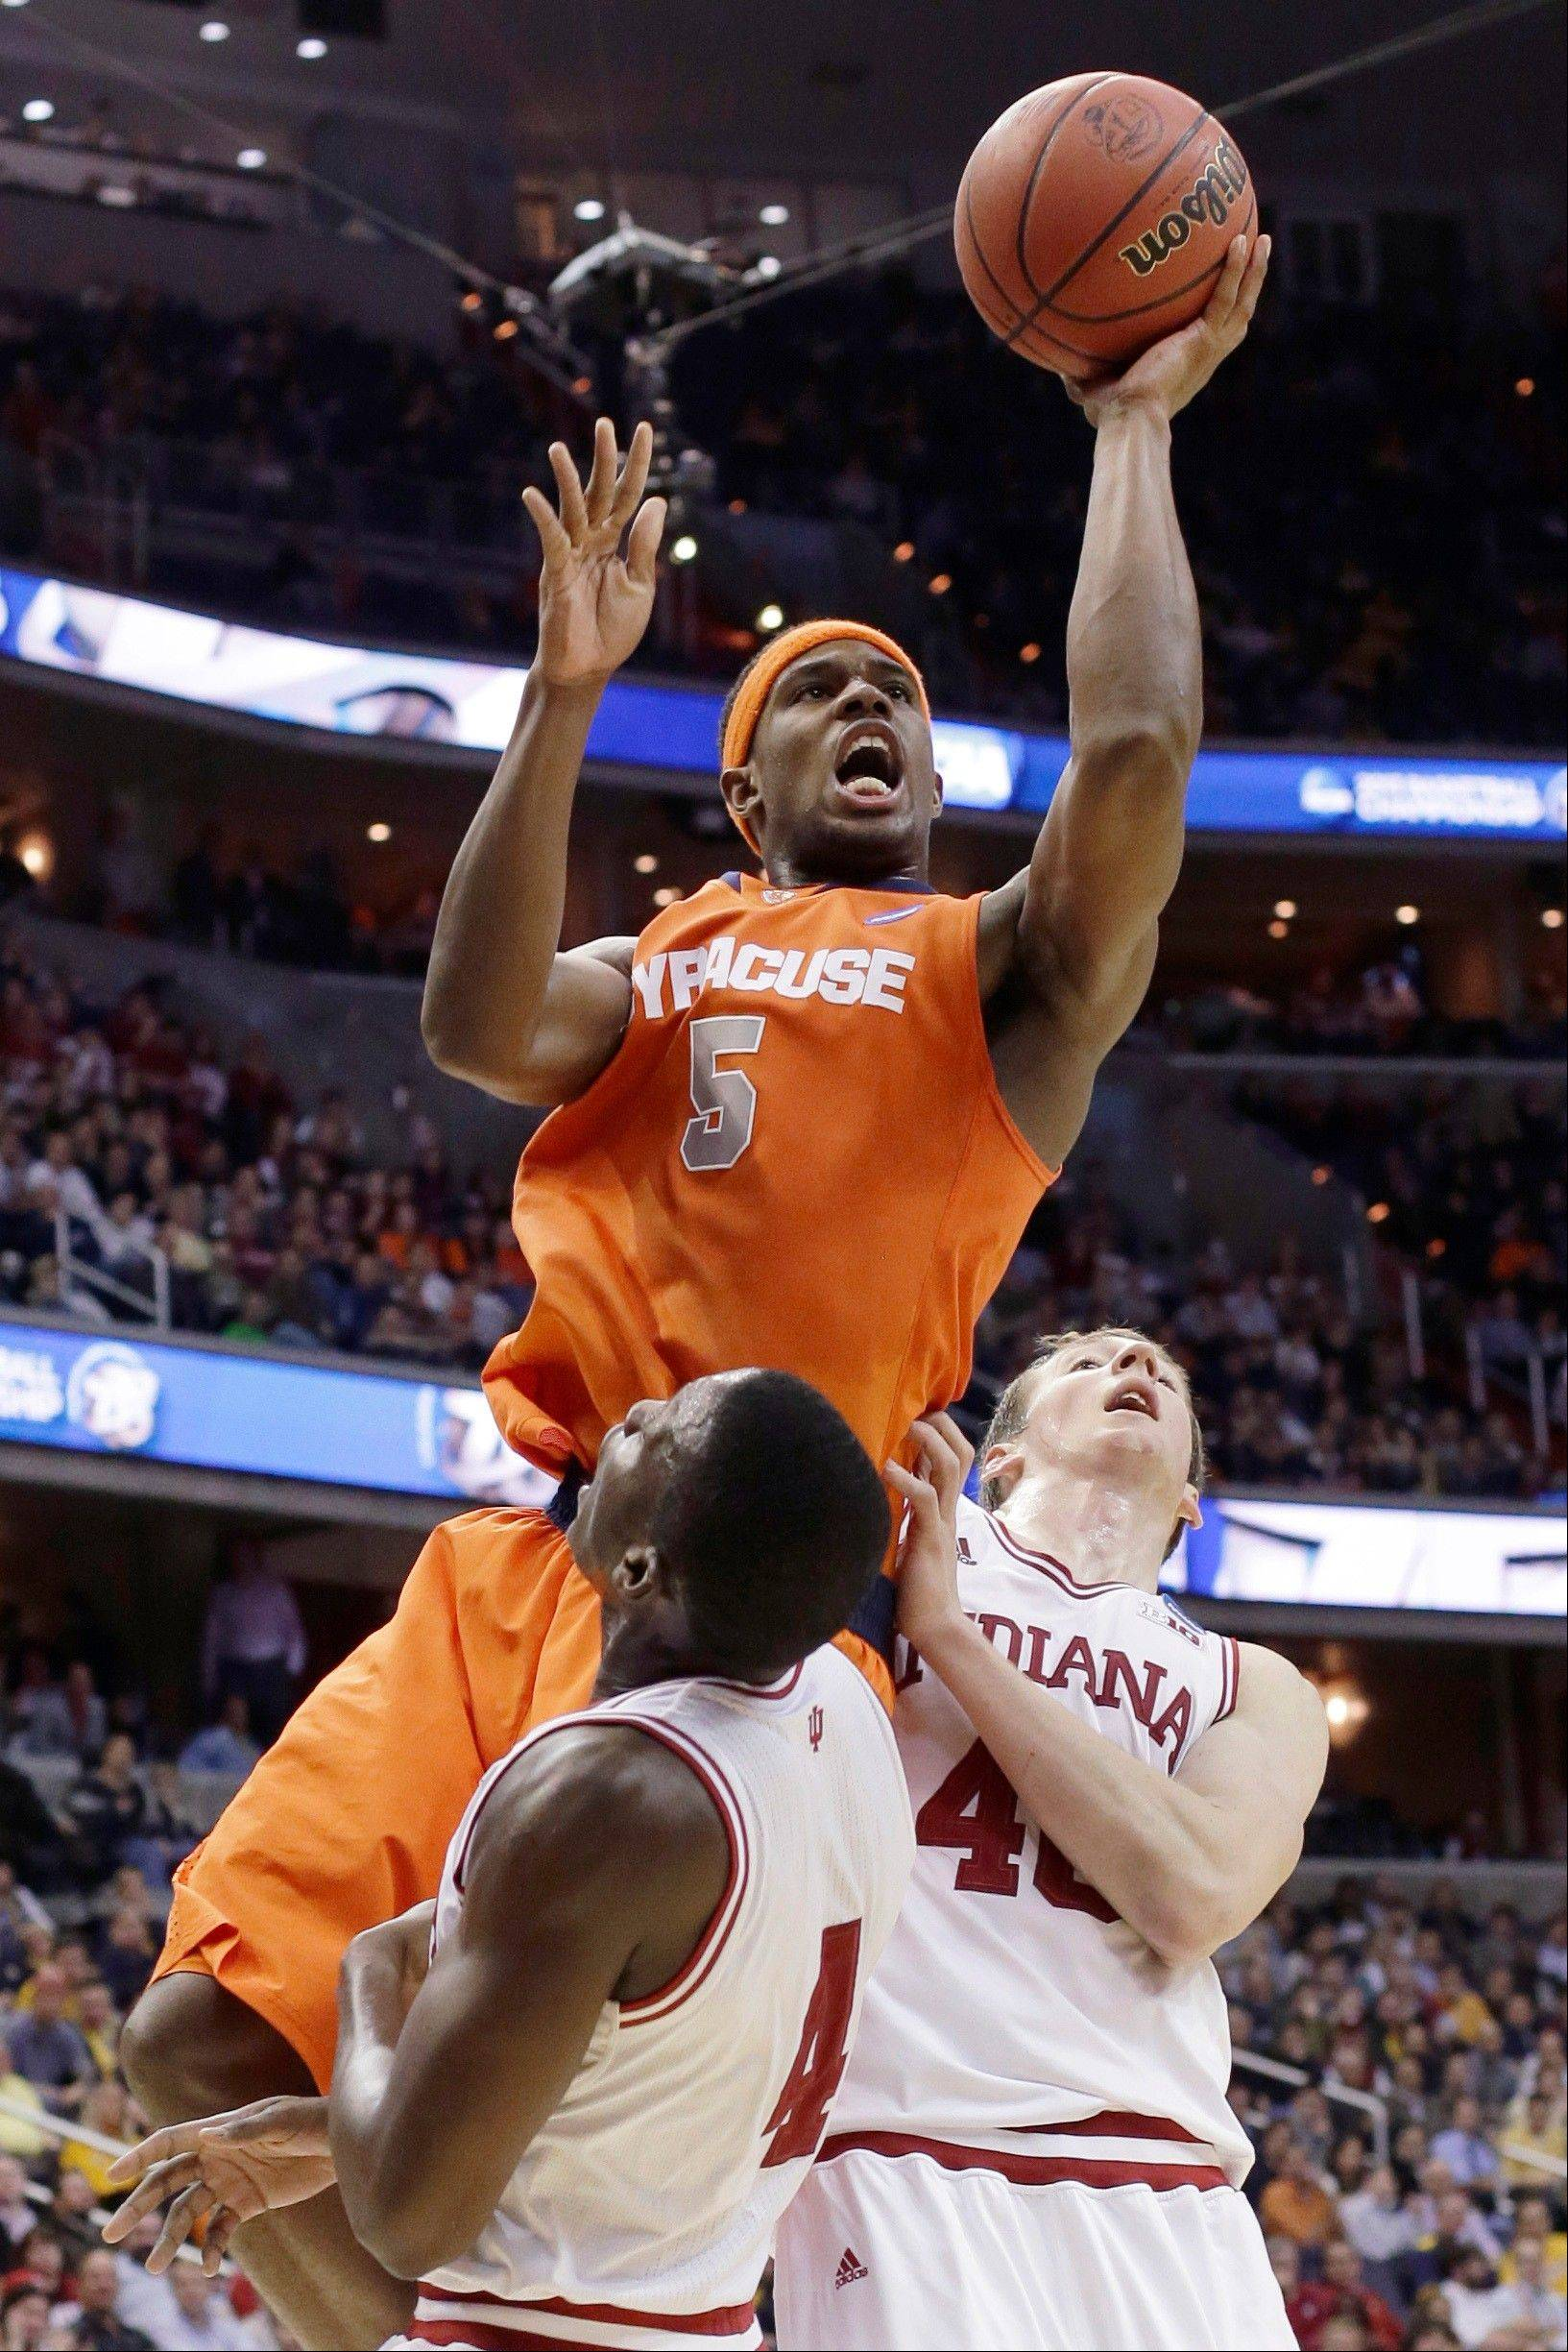 Syracuse forward C.J. Fair (5) shoots over Indiana guard Victor Oladipo (4) and forward Cody Zeller (40) during the second half of an East Regional semifinal in the NCAA men's college basketball tournament, Thursday, March 28, 2013, in Washington. (AP Photo/Pablo Martinez Monsivais)